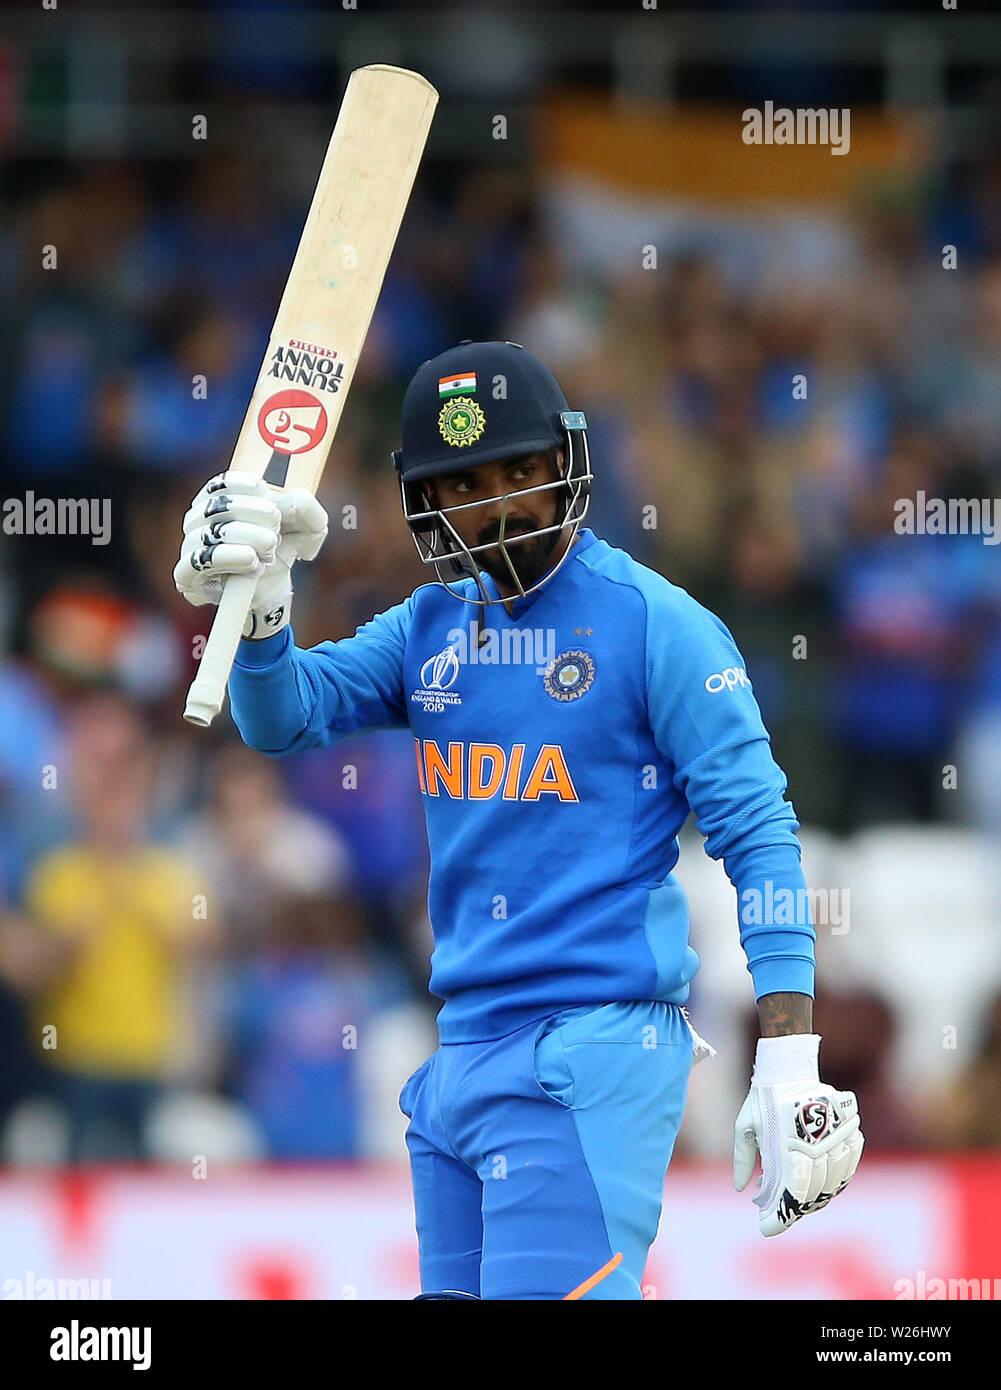 India's KL Rahul celebrates his century during the ICC Cricket World Cup group stage match at Headingley, Leeds. - Stock Image